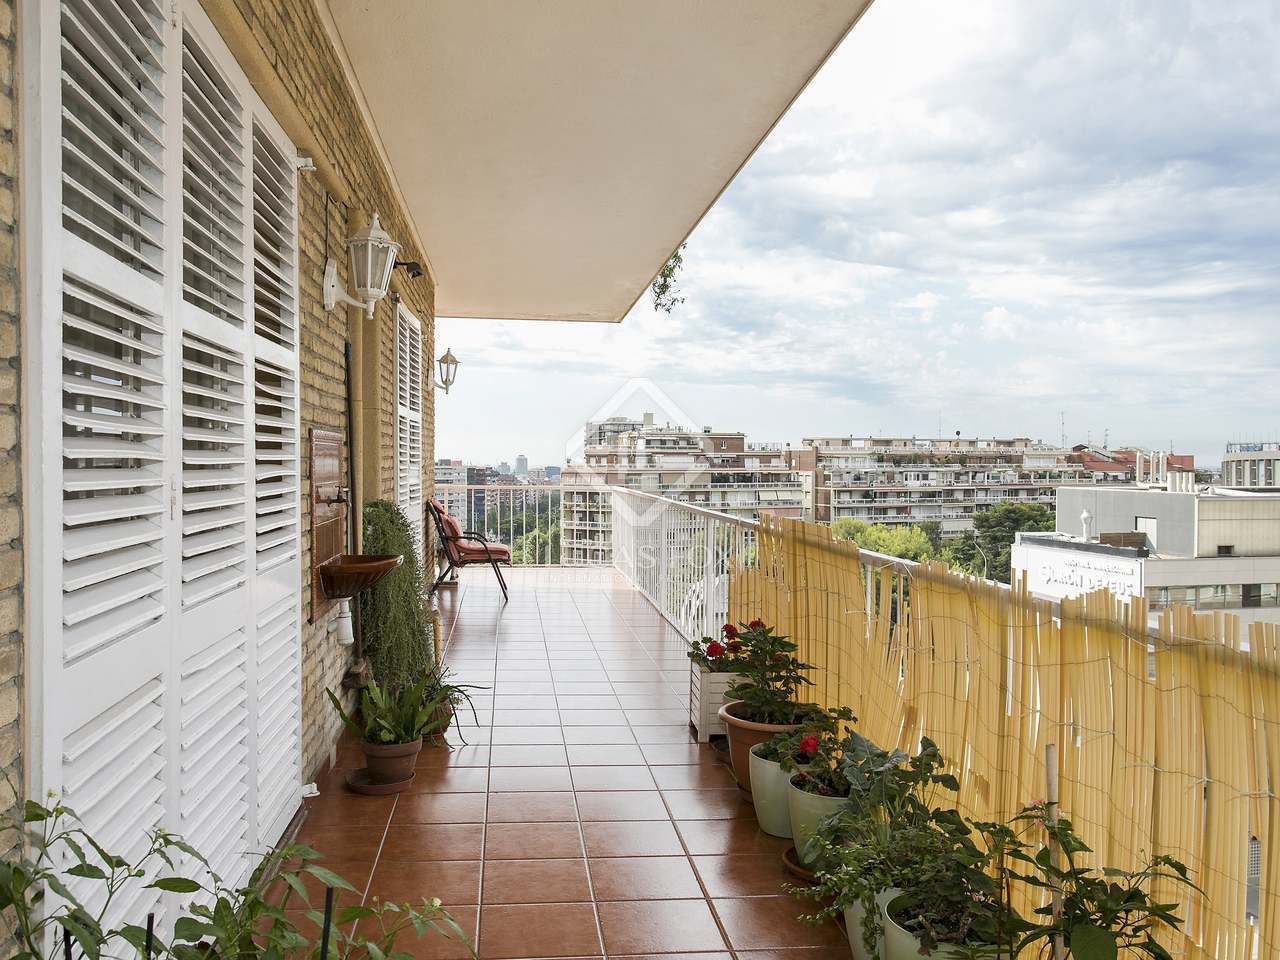 204 m apartment with 40 m terrace for sale in les corts - Zona alta barcelona ...